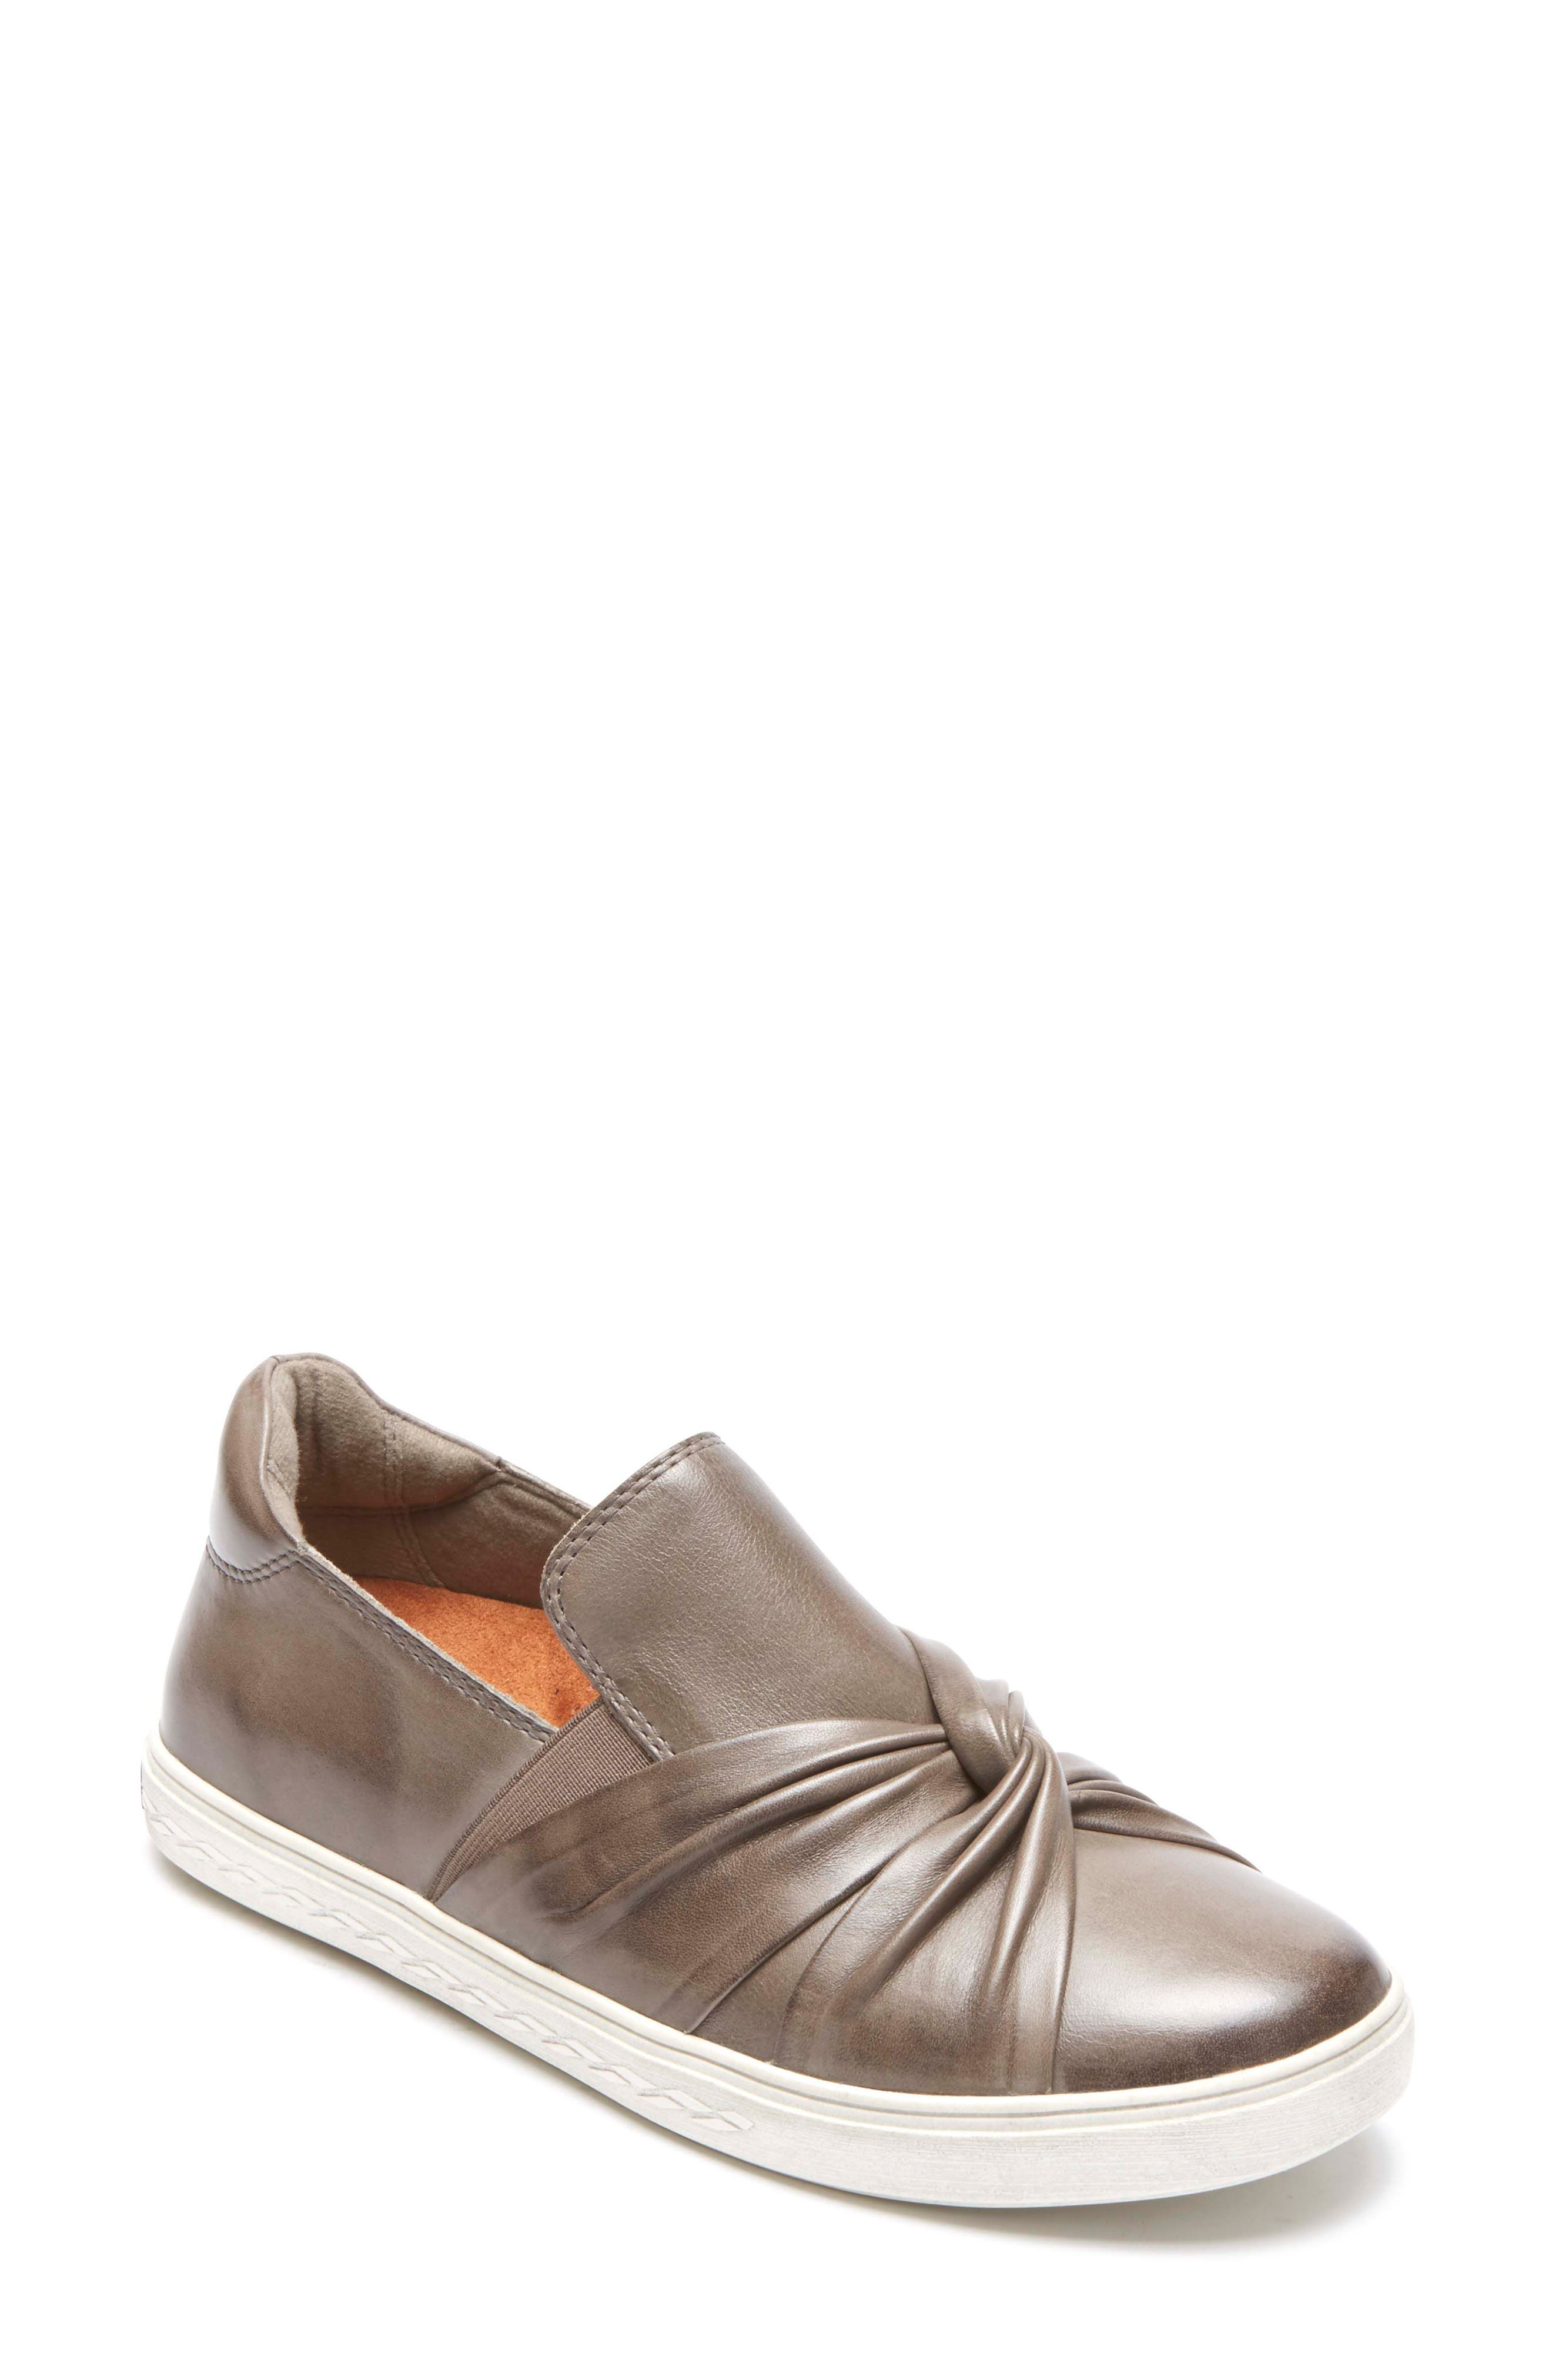 Rockport Cobb Hill Willa Bow Slip-On (Women)